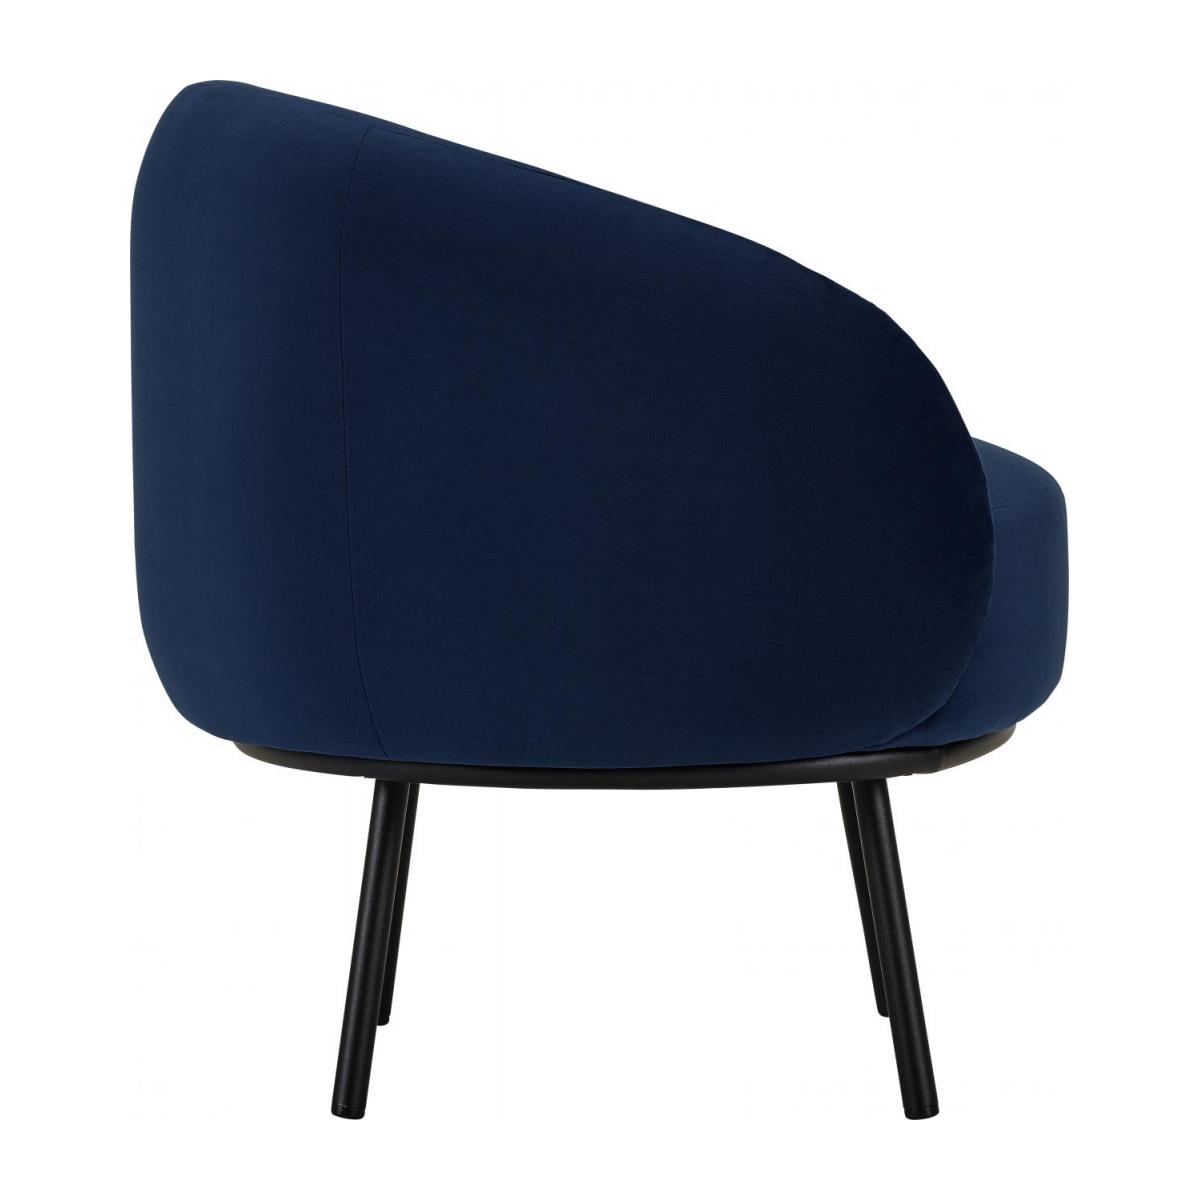 Sessel aus Samt - Blau - Design by Adrien Carvès n°5